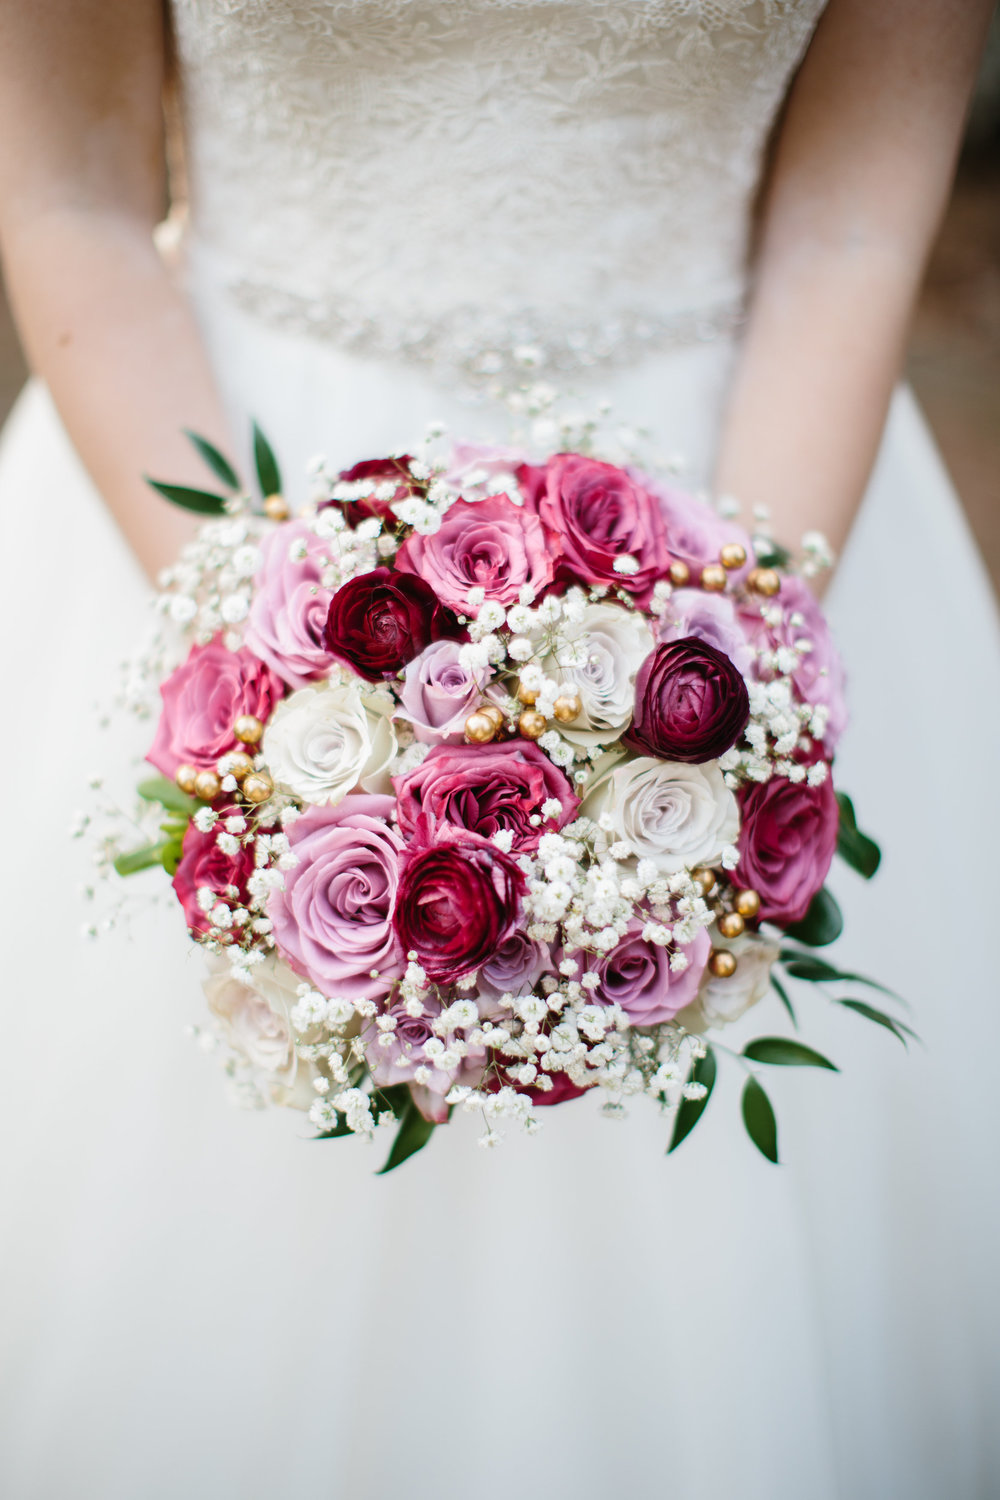 Vancouver Bridal bouquet by Floral Design by Lili,Lower Mainland Florist, British Columbia. Image by Laura anne Jensen